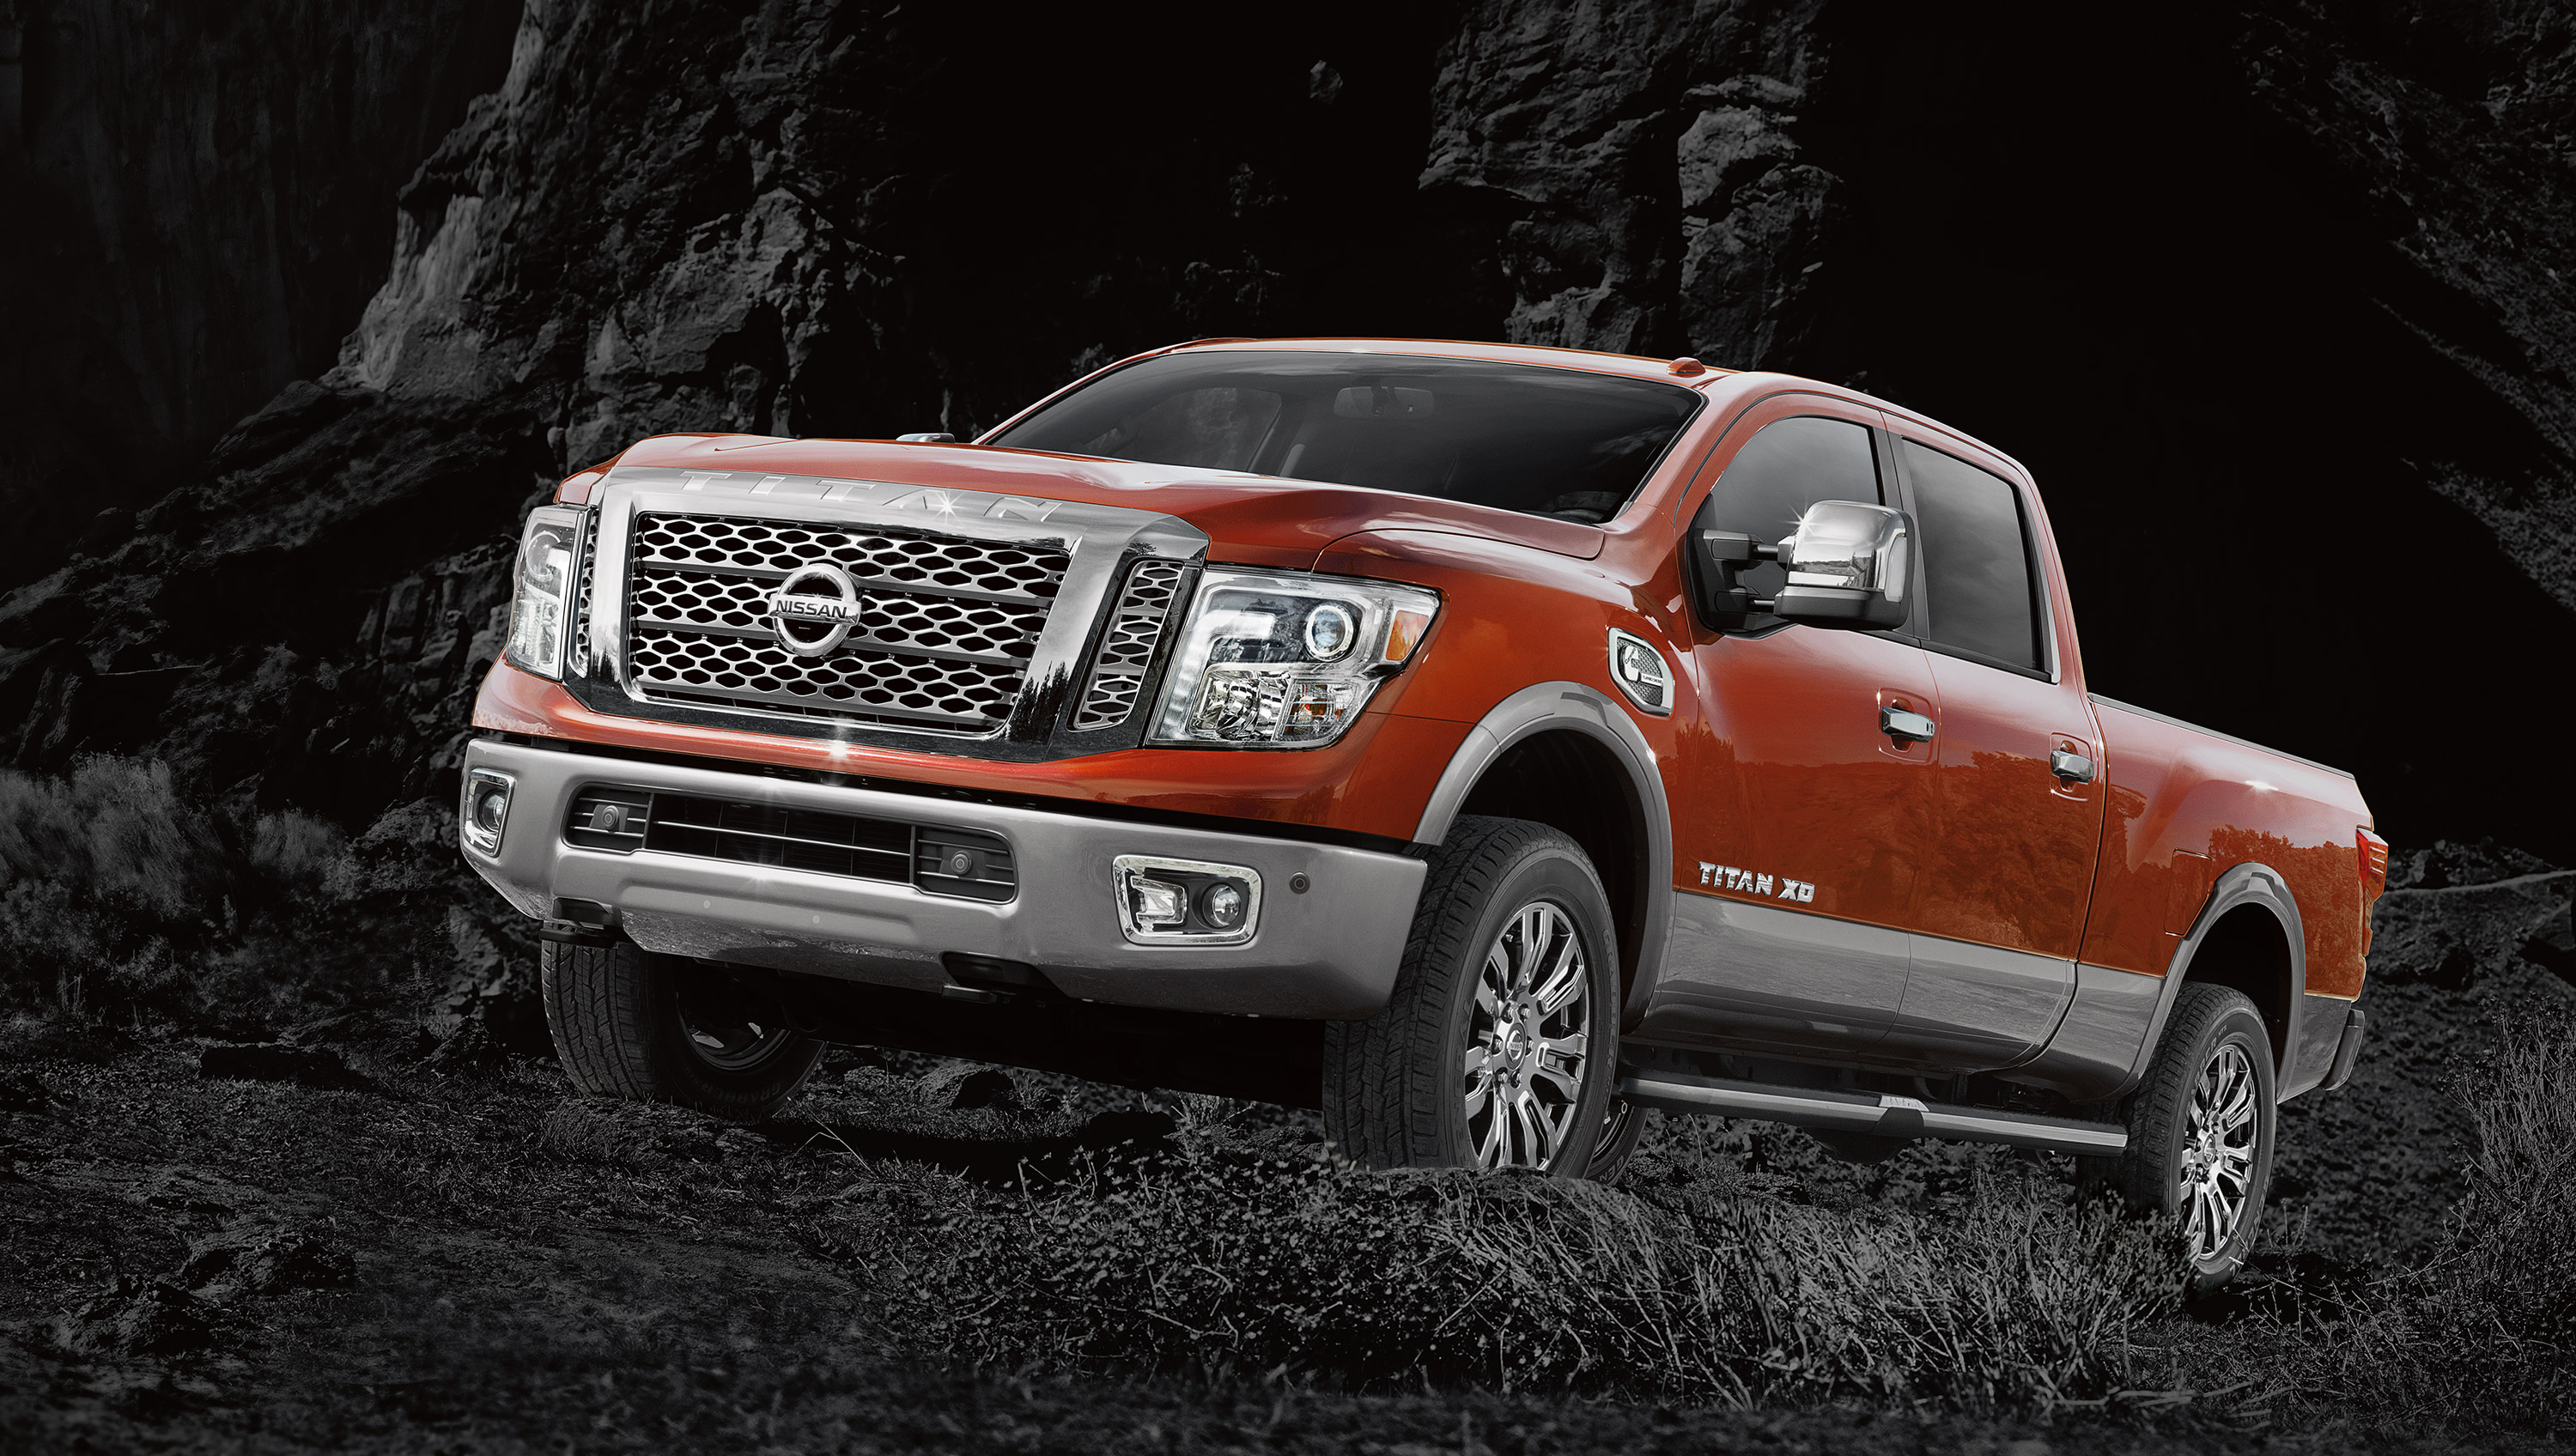 2016-nissan-titan-xd-front-profile-forged-copper-zoom-hd